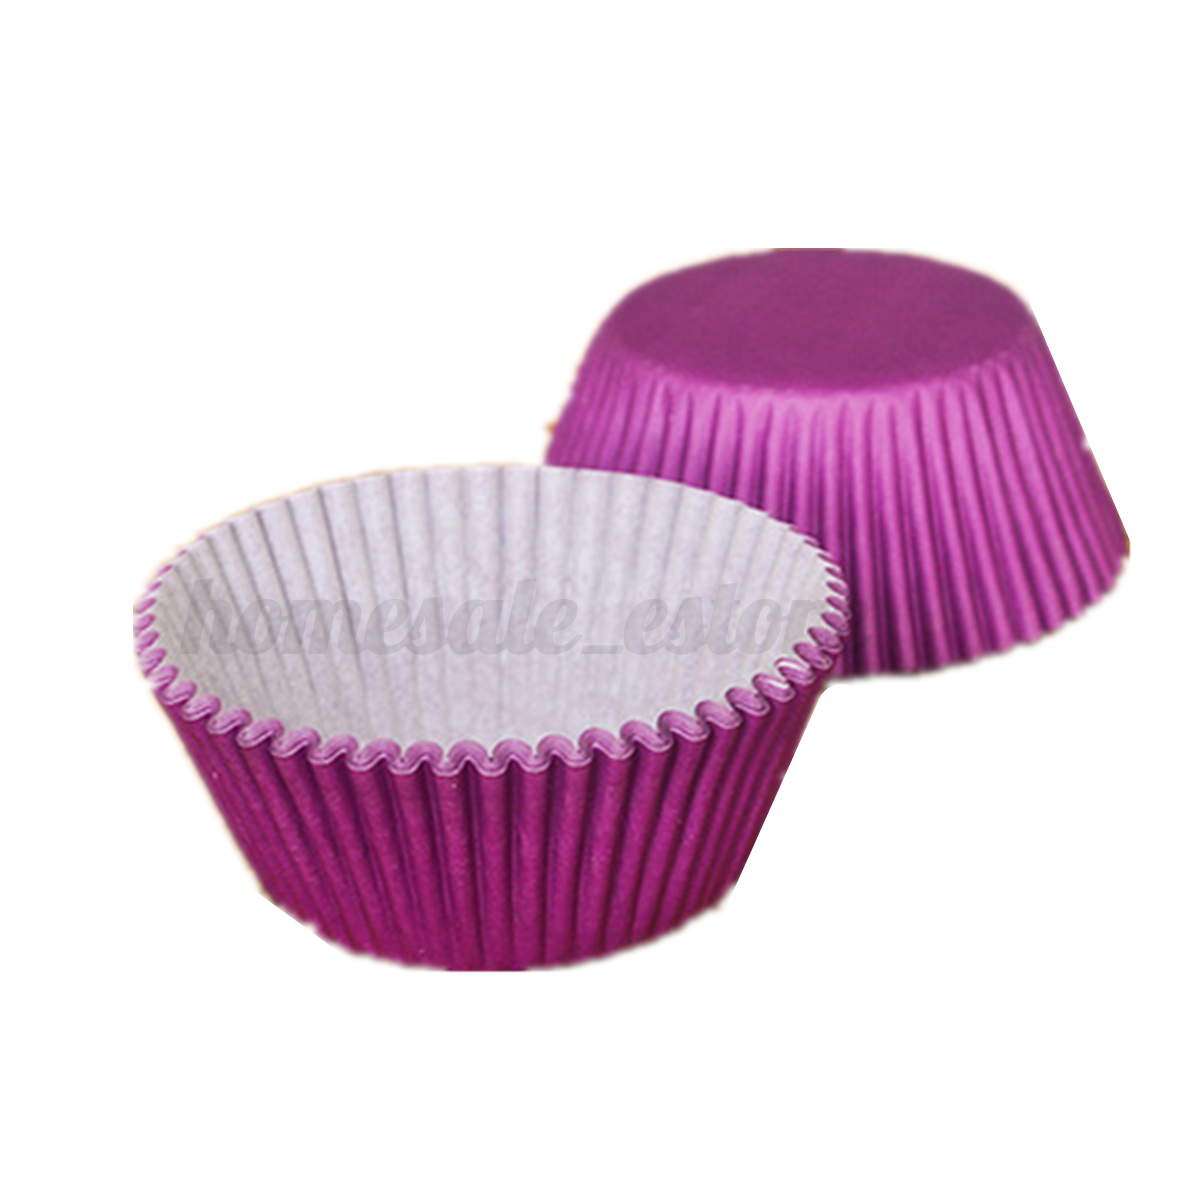 paper cupcake liners Cupcake pan liners baking cups muffin papers whatever words you use for those paper liners that go into a muffin or cupcake pan, i'm sure you've heard of them in fact, you probably have a stash of them in the back of the cupboard right now but what you might not know is, how do you know.